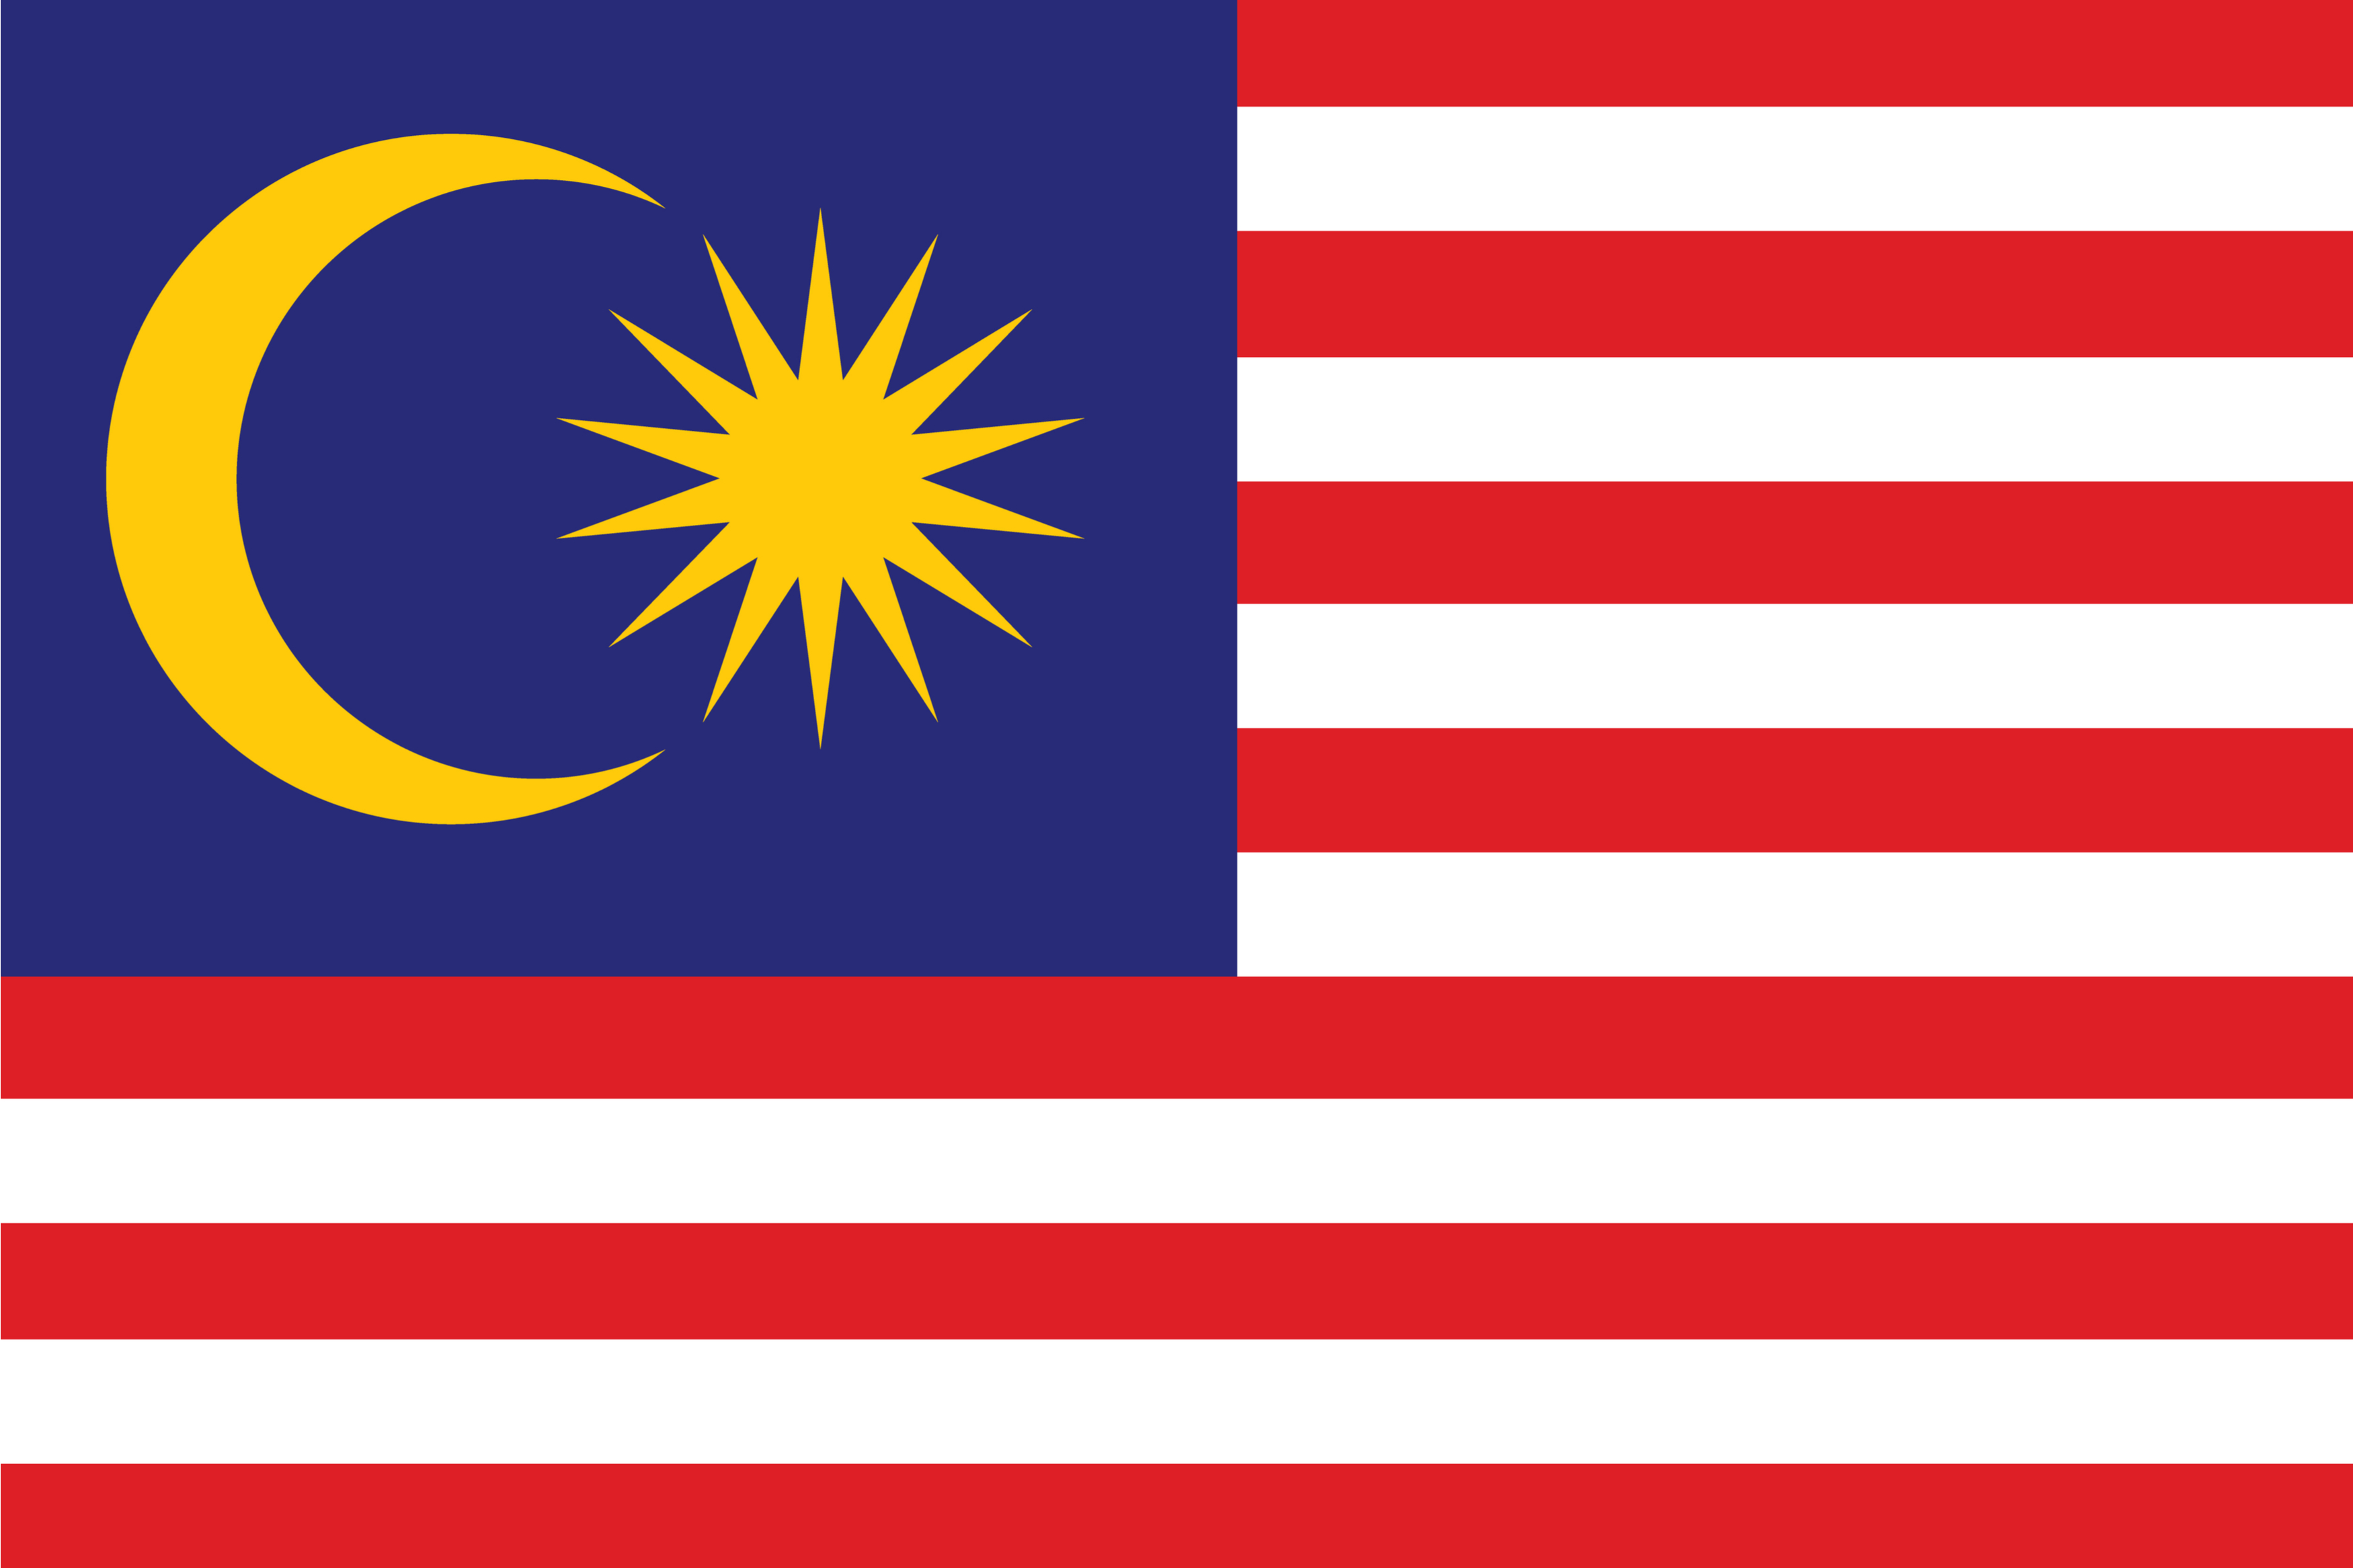 The official flag of Malaysia.